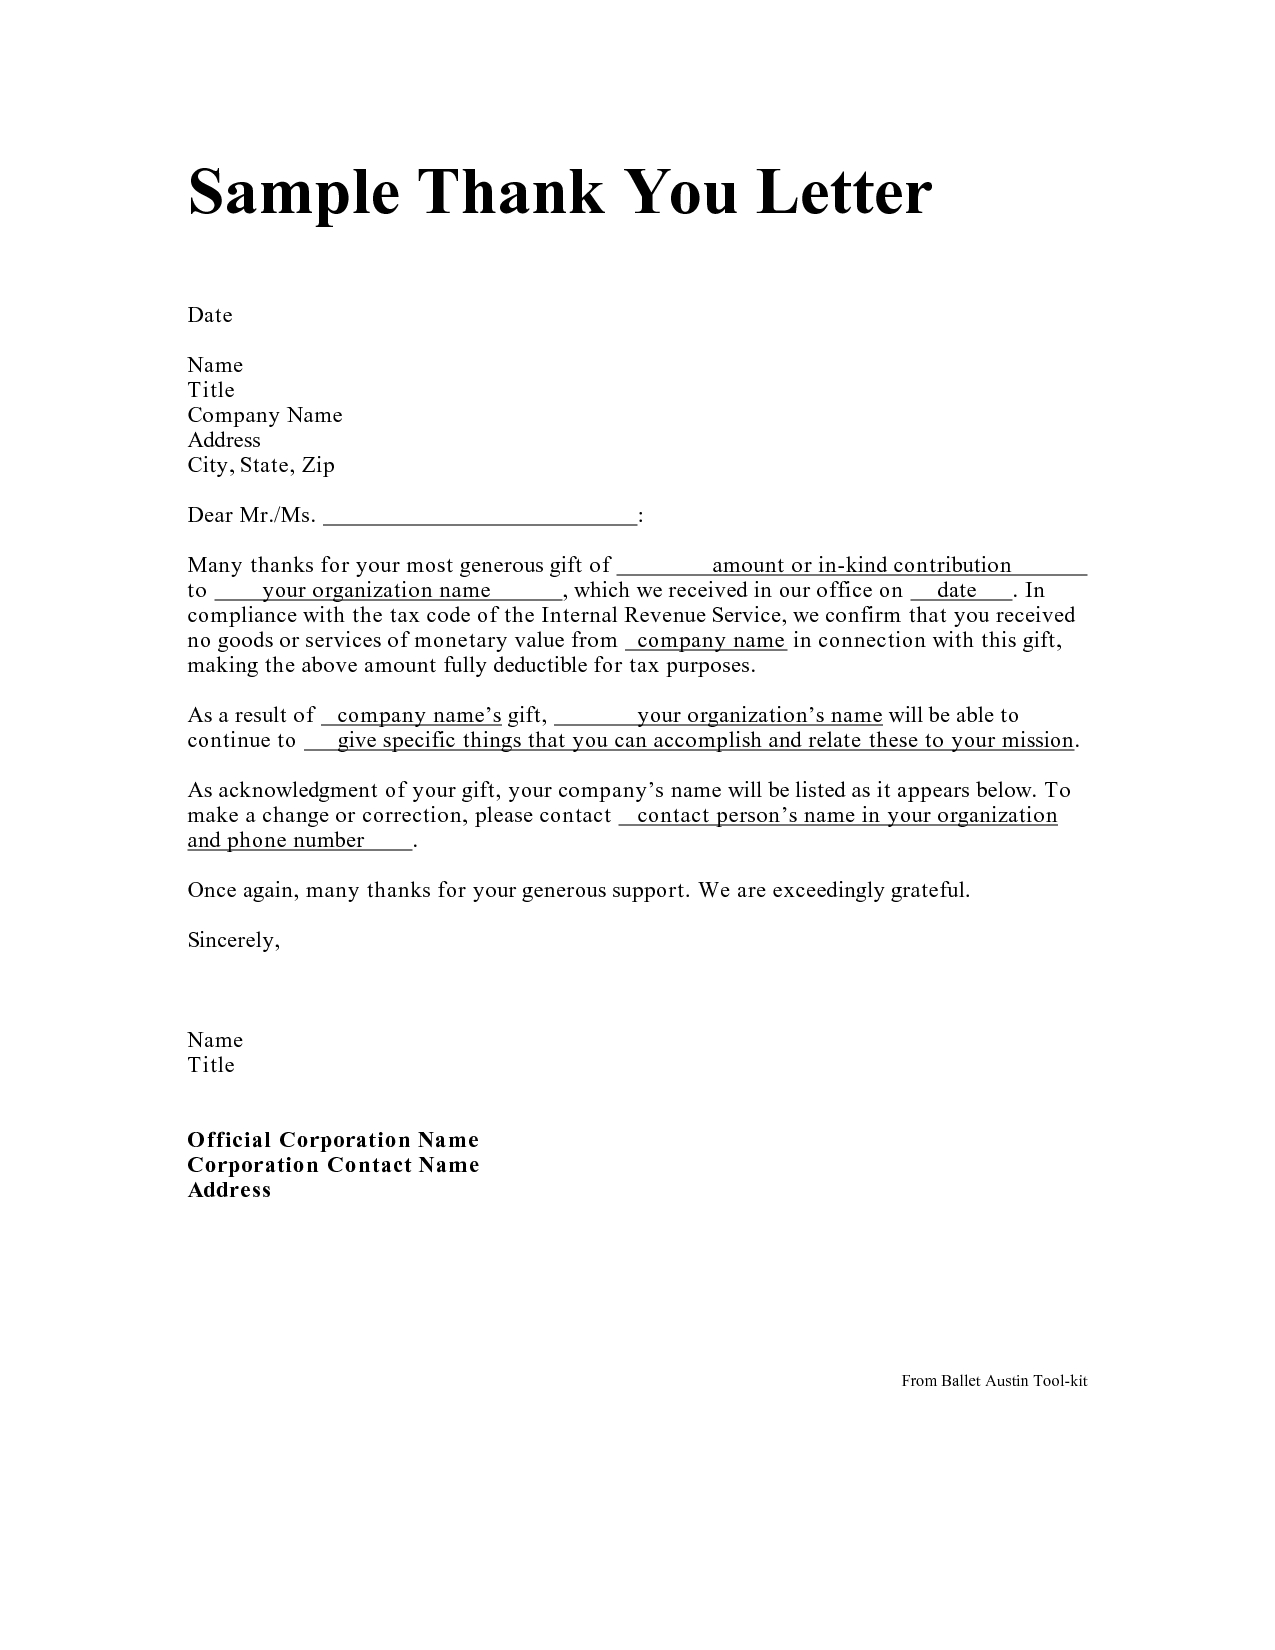 Personal thank you letter samples business format cialisnets. Info.